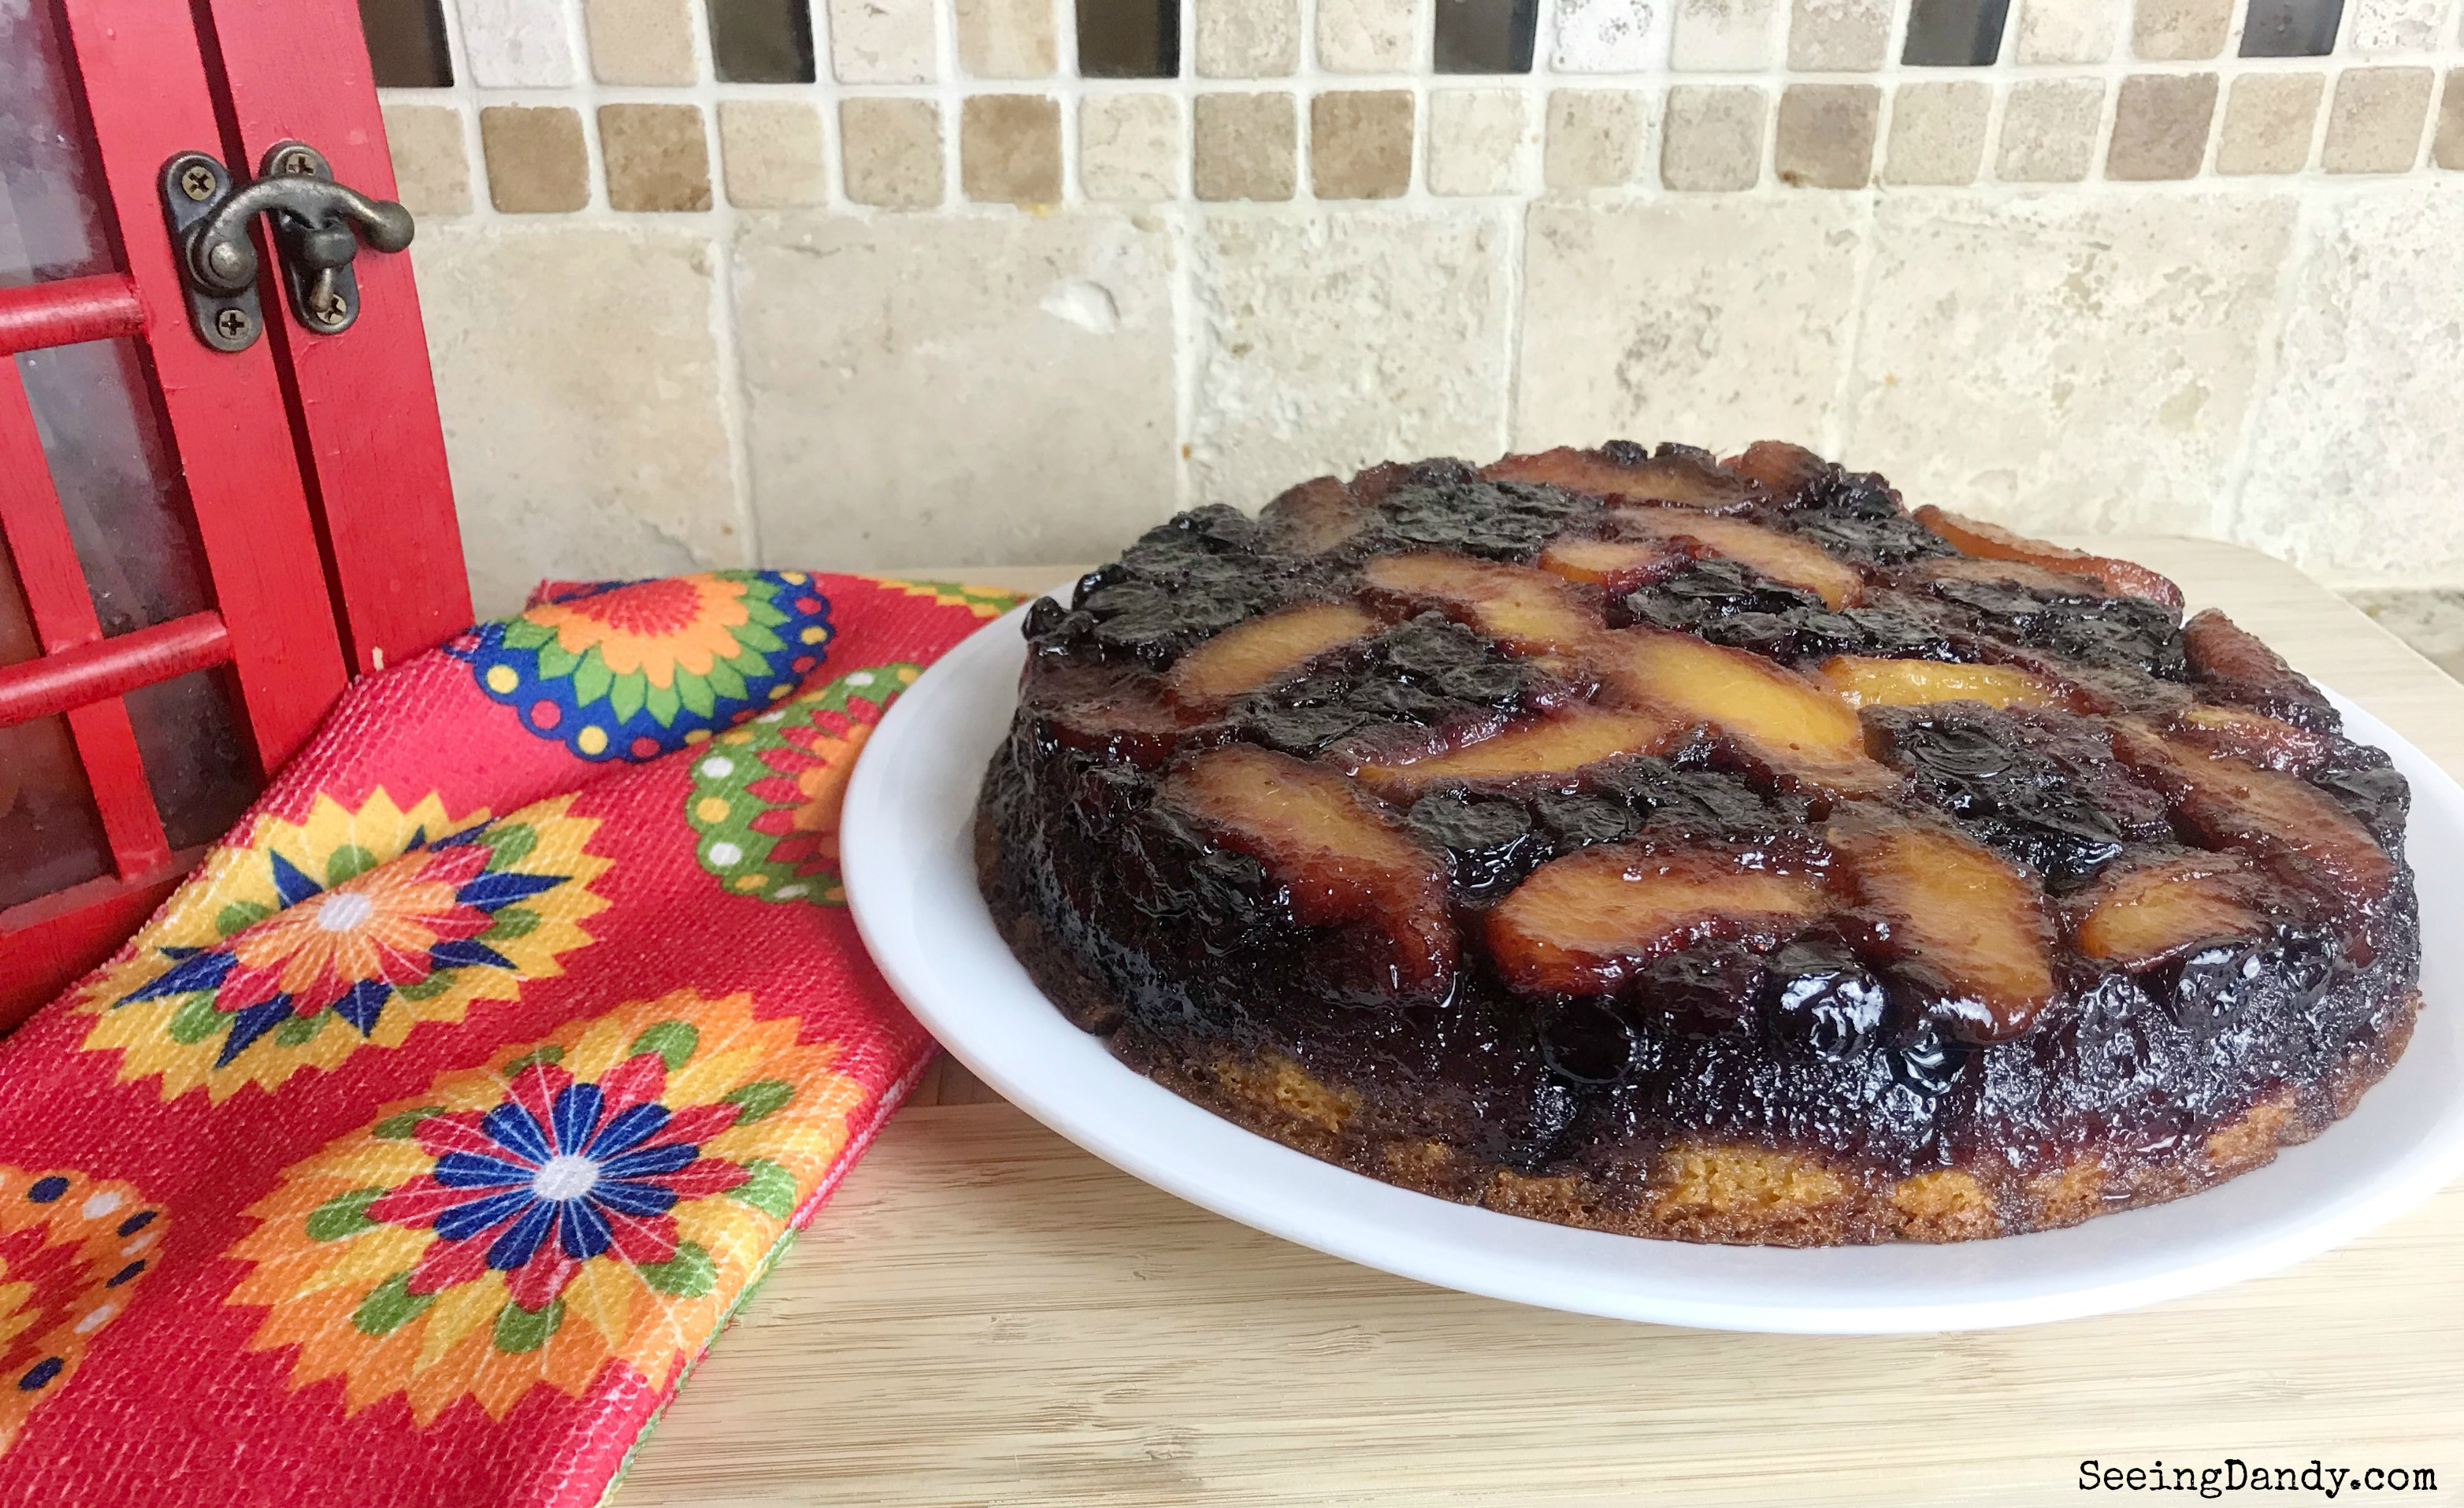 Peach blueberry upside down cake in a modern kitchen with glass tile backsplash.